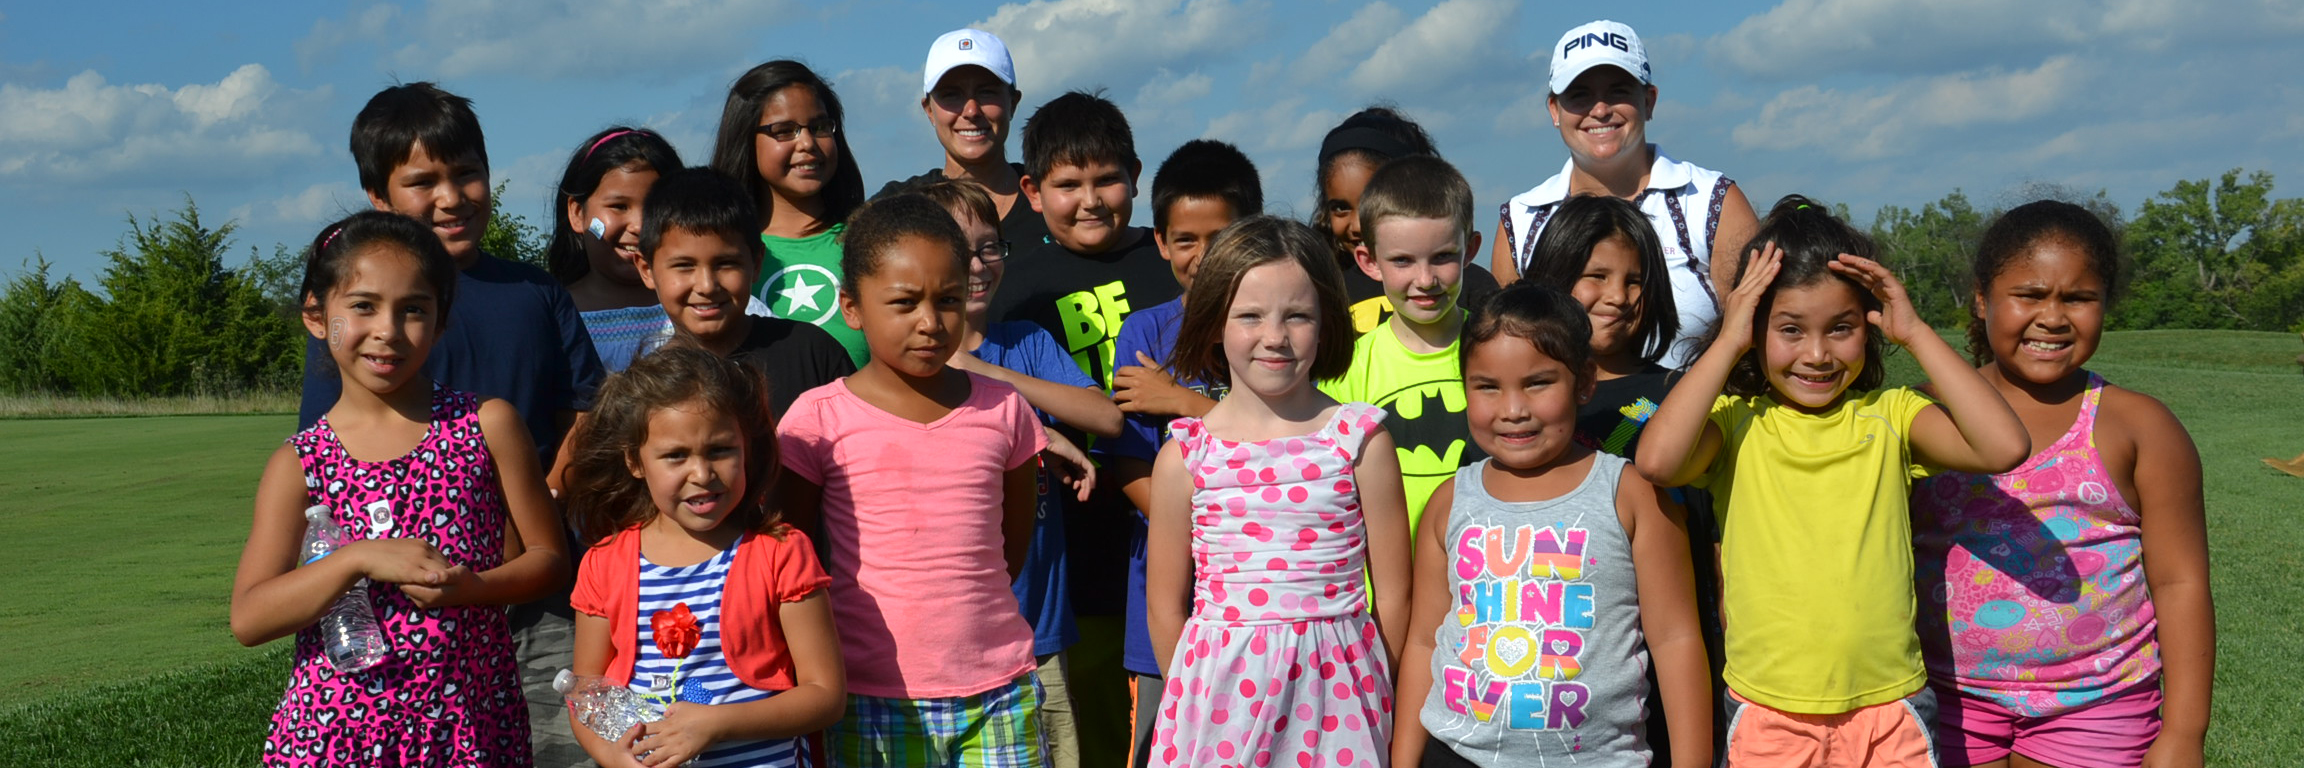 Events - Symetra Tour Junior Clinics